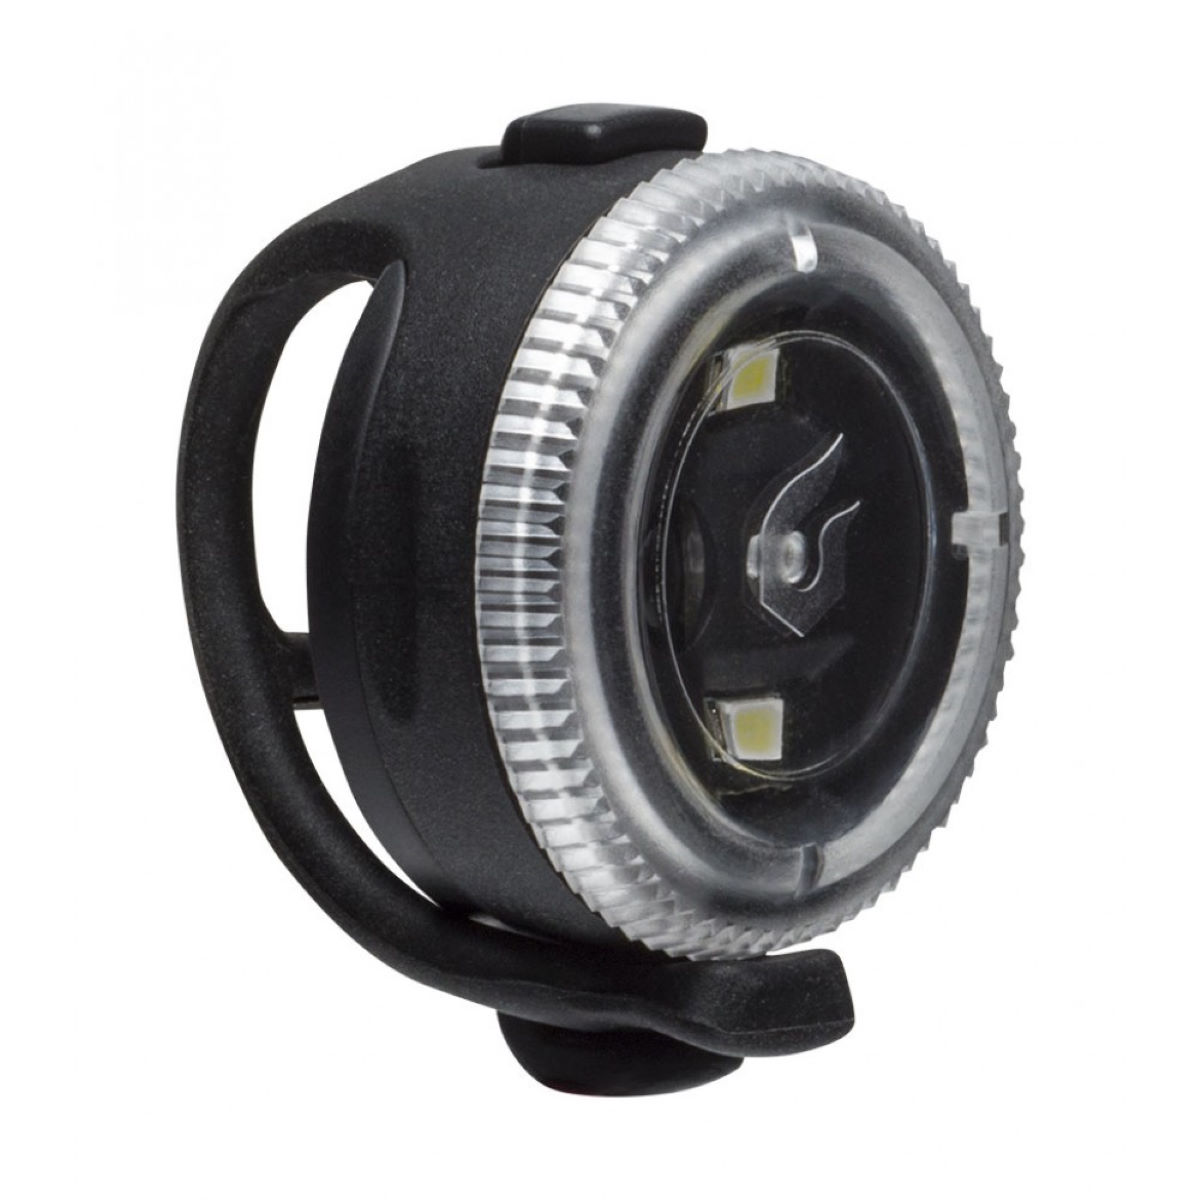 Blackburn Click Front Light - Luces delanteras